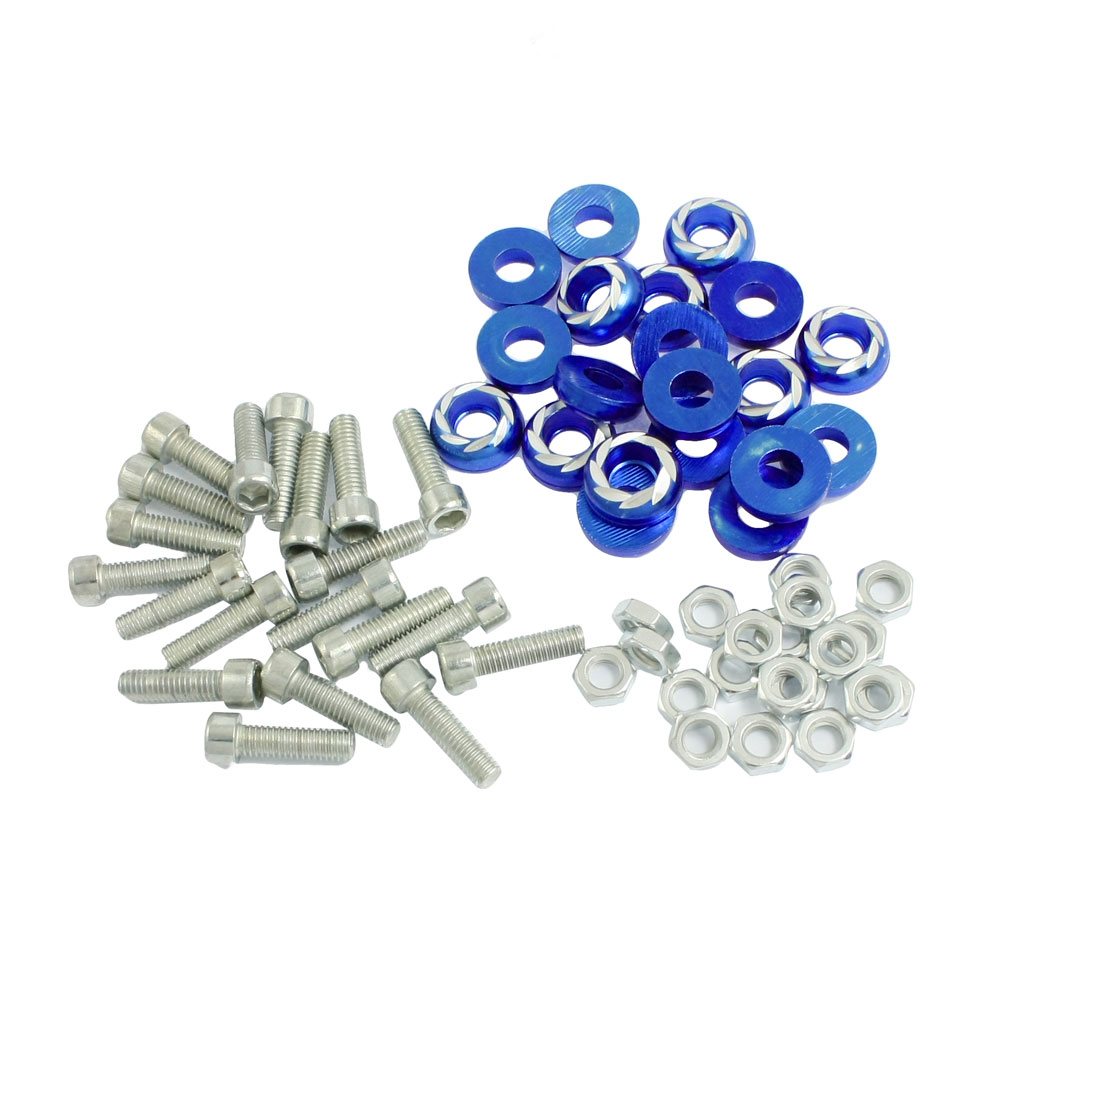 20 Pcs Silver Tone Blue Round Car License Plate Bolt Screw